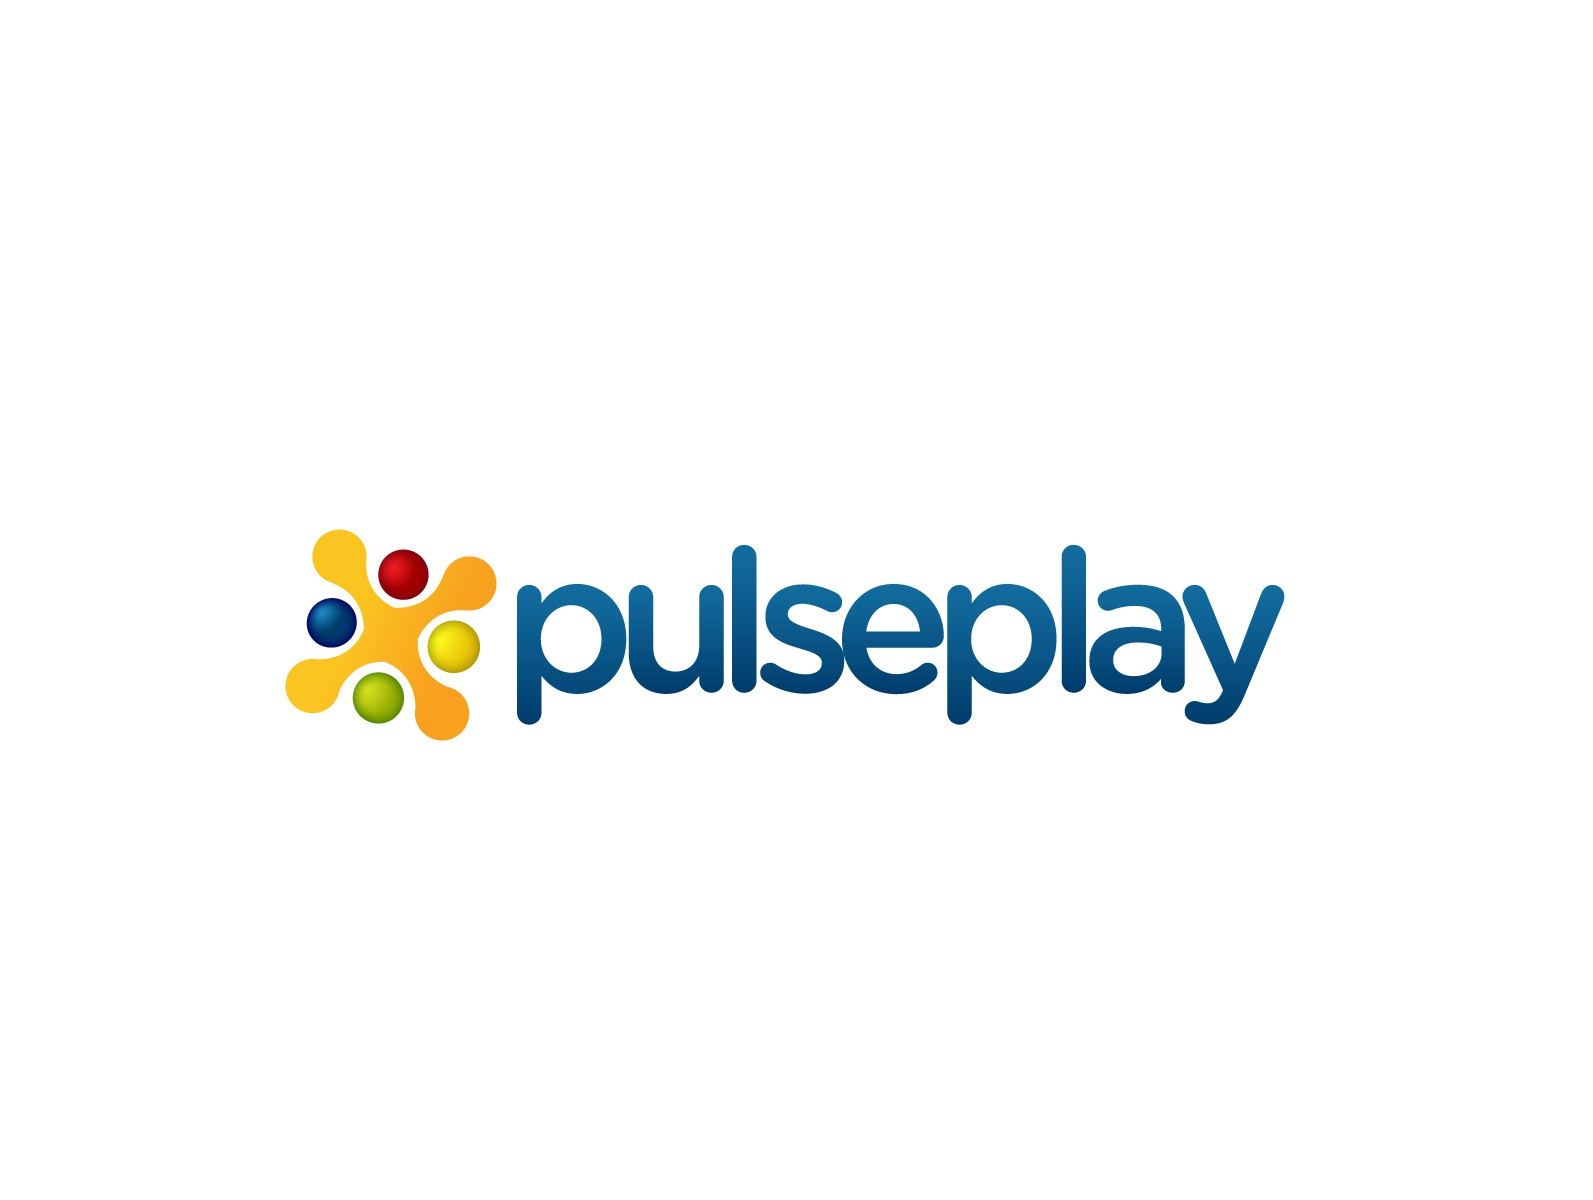 Help PulsePlay with a new logo